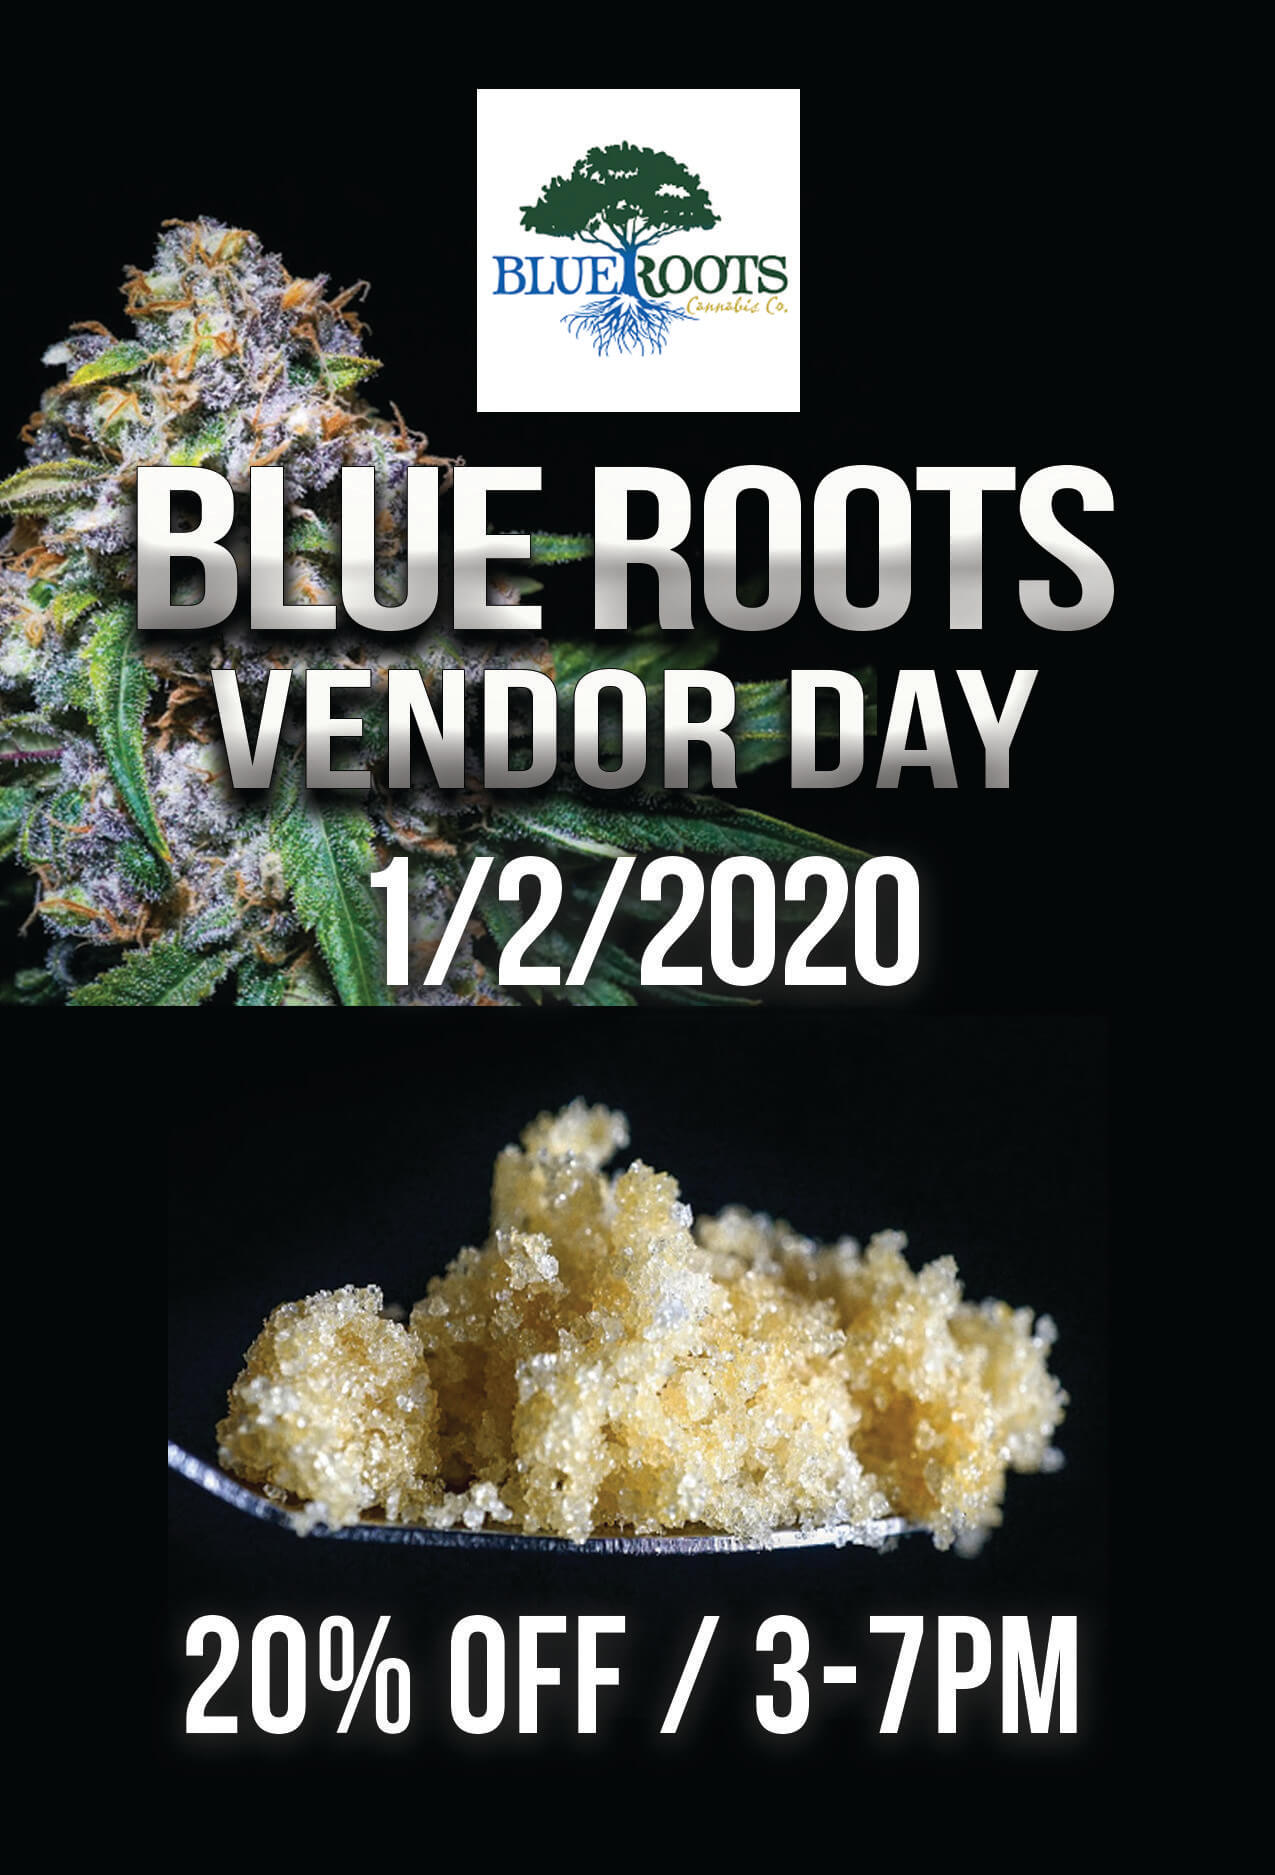 BLUE ROOTS Vendor Day – 1/2/2020